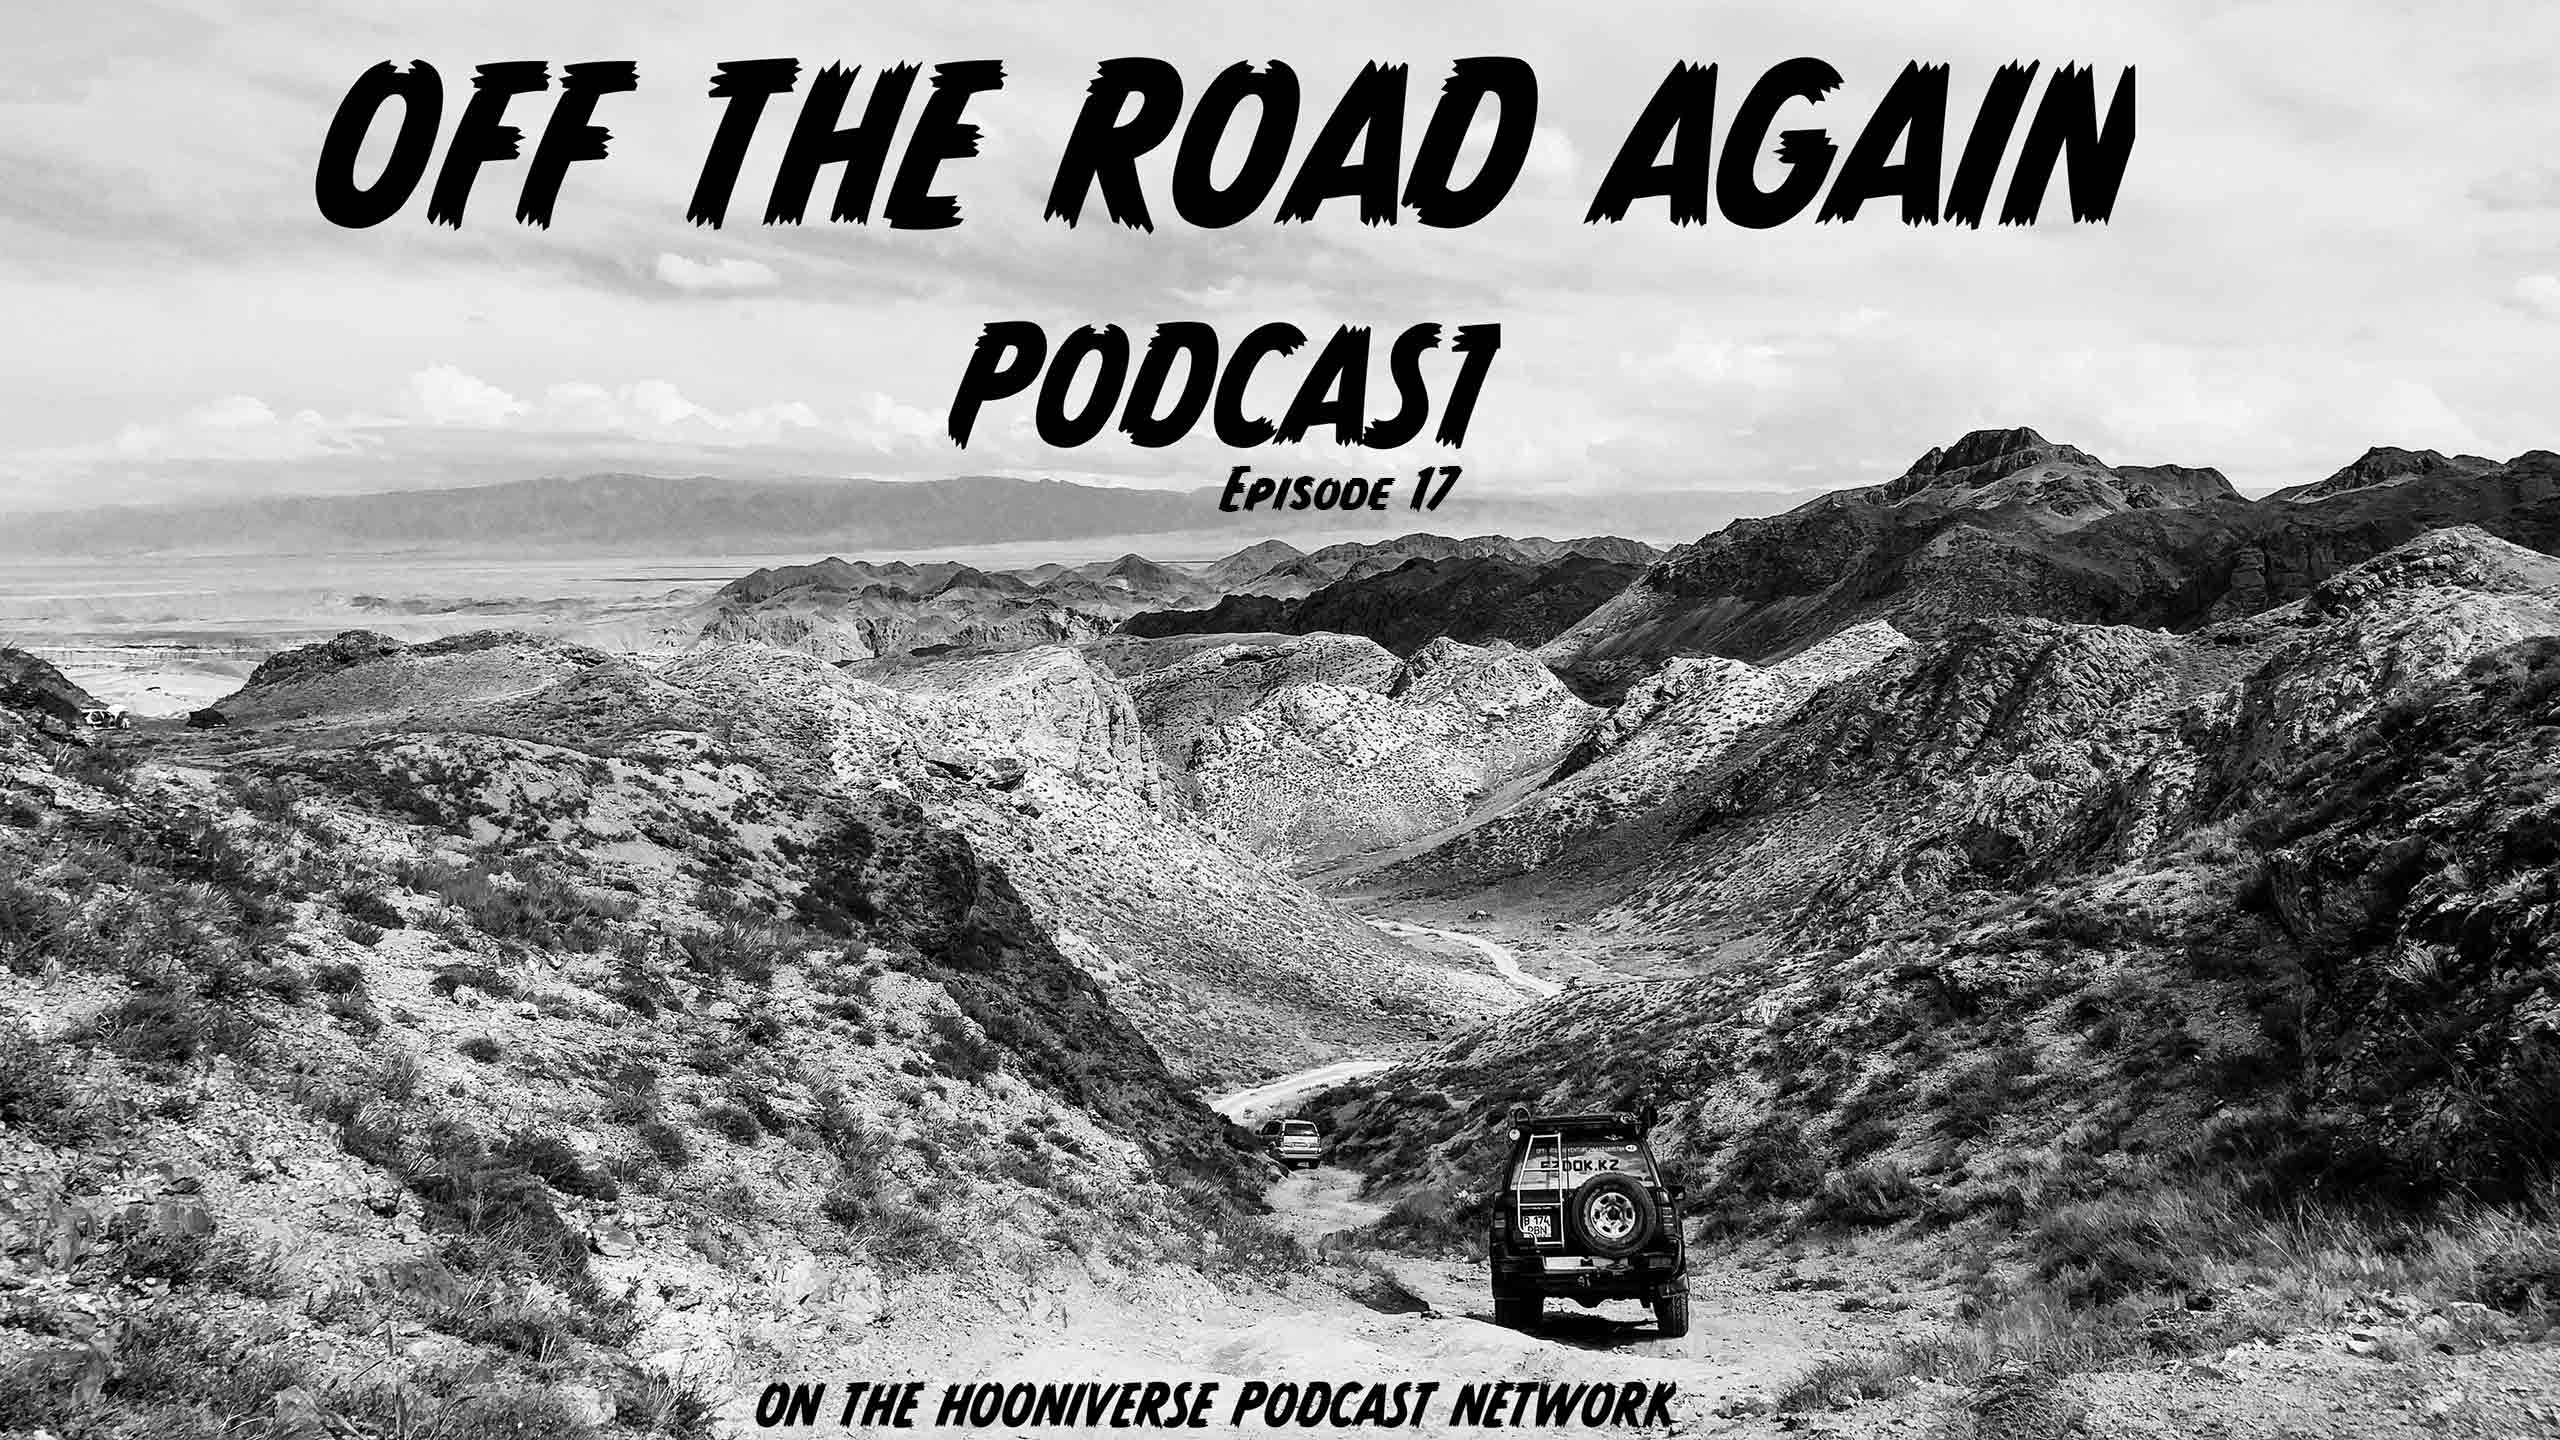 Off The Road Again Podcast - Episode 17